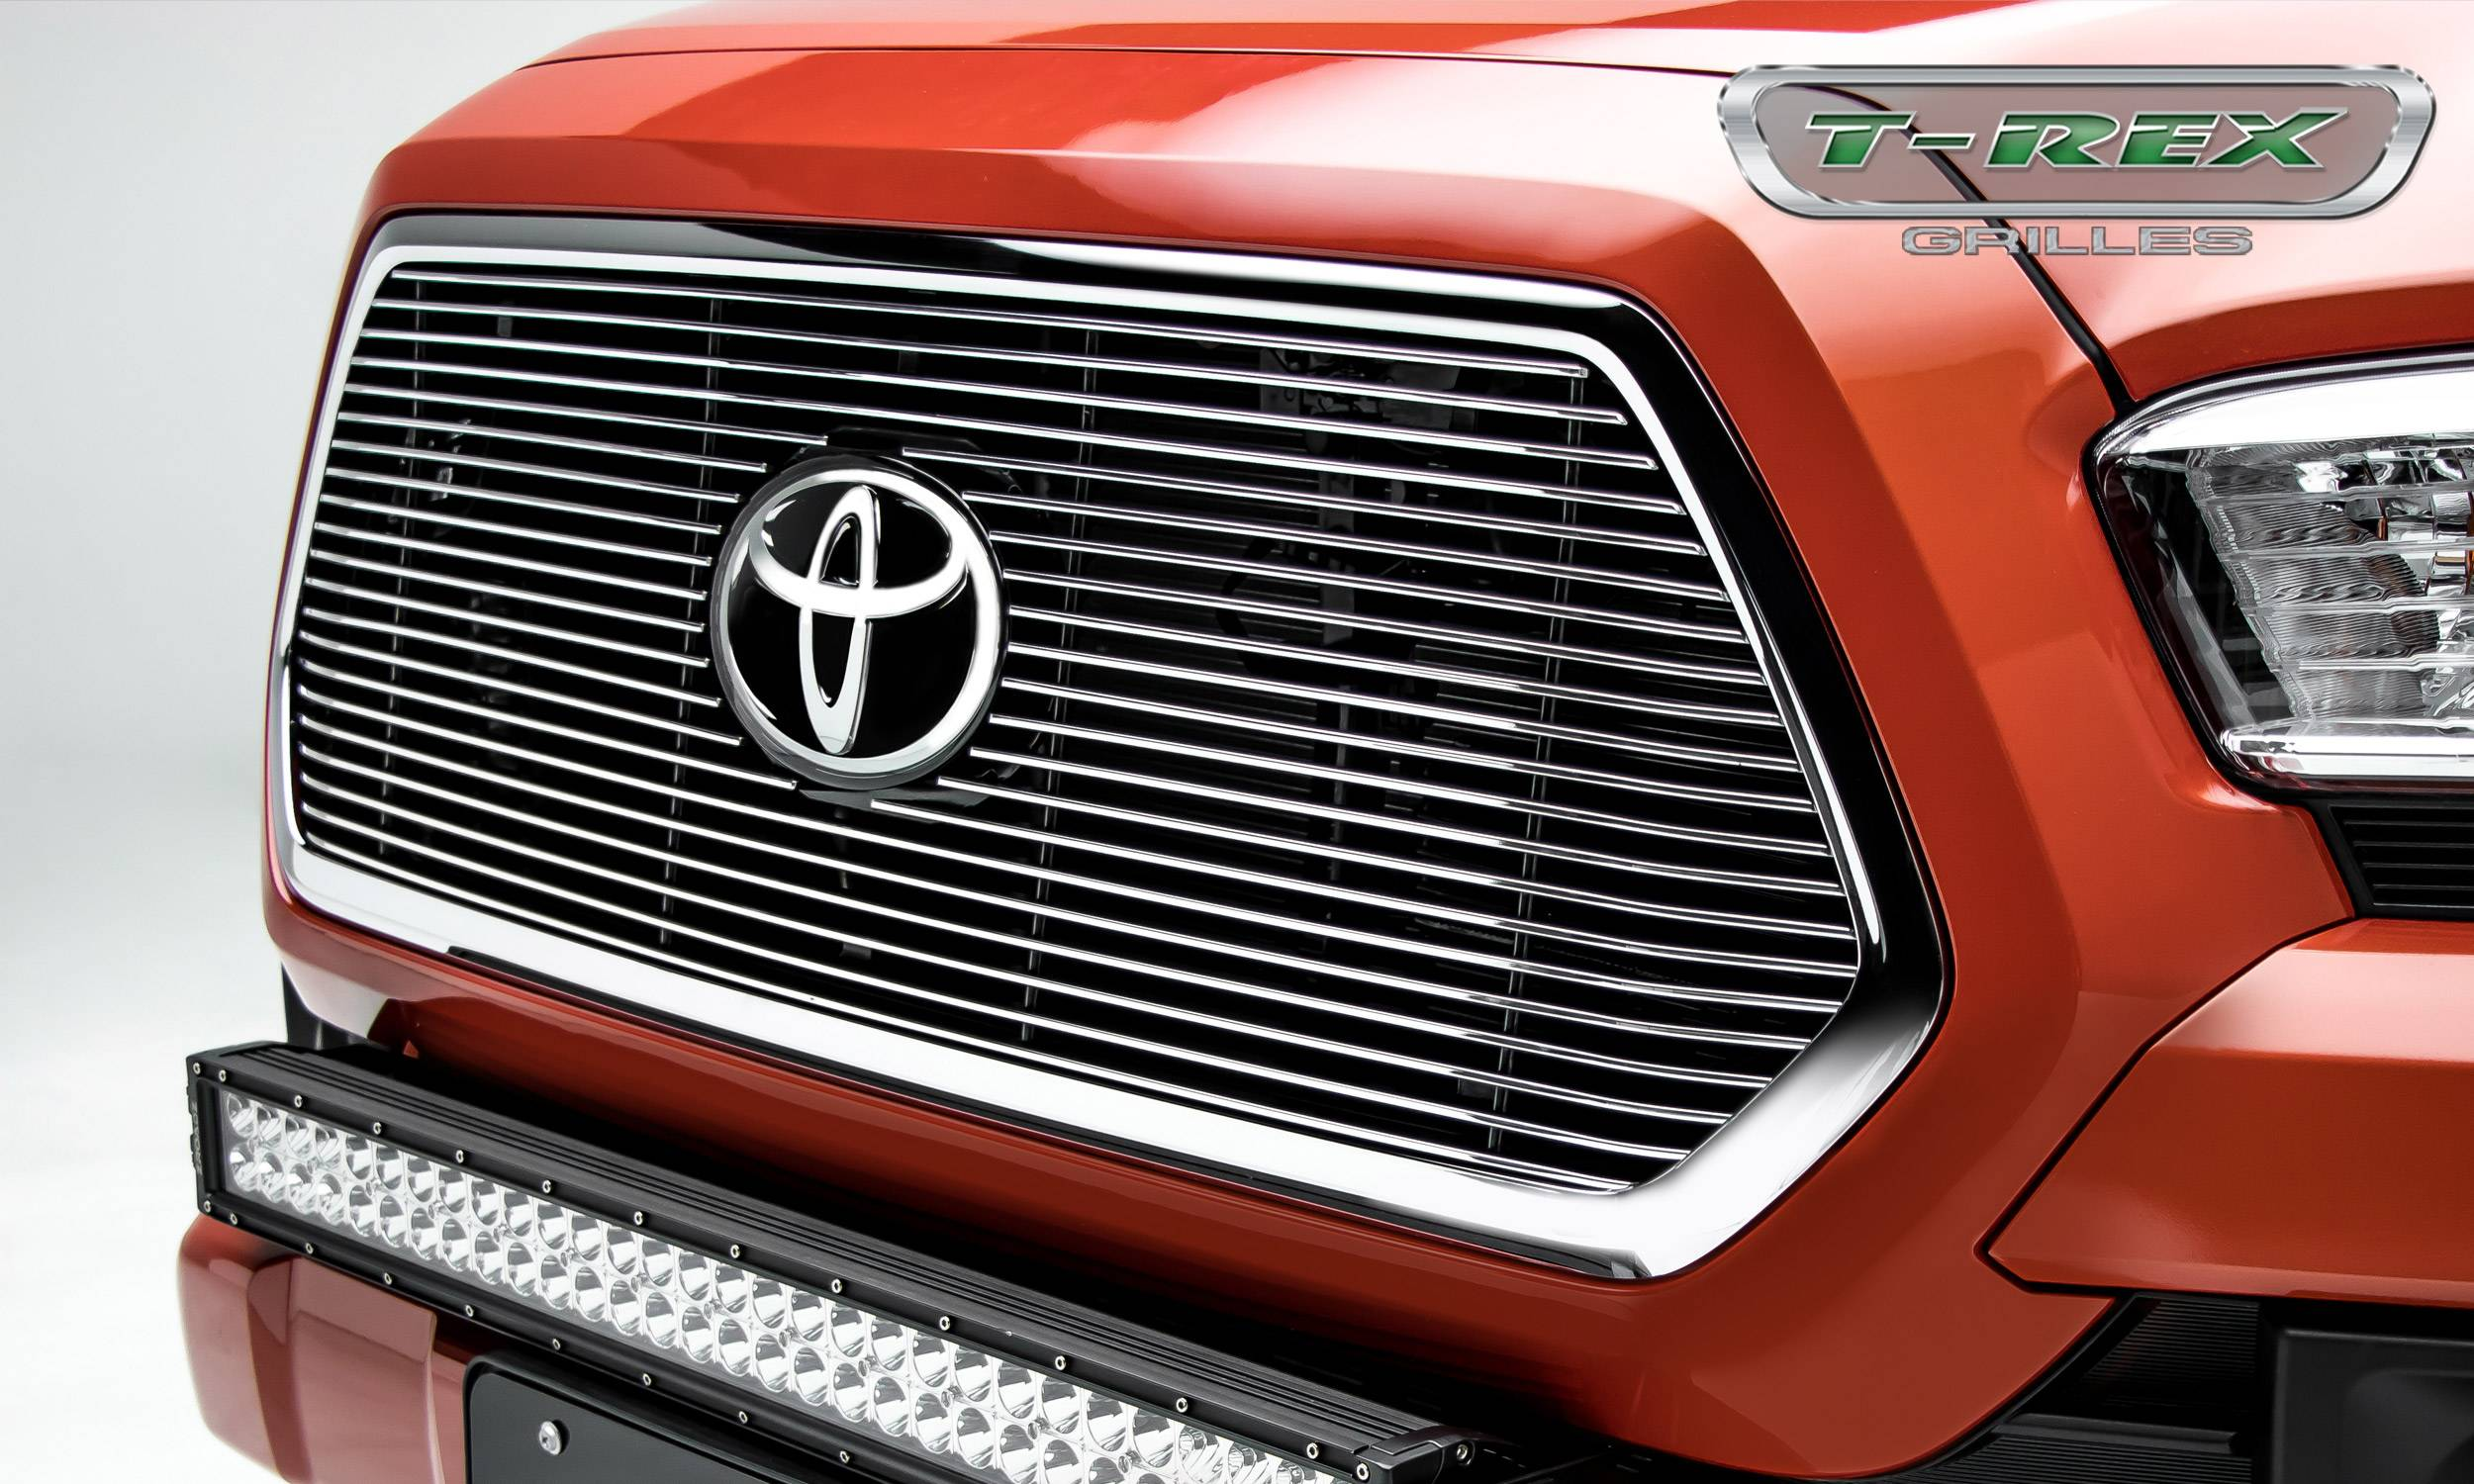 T-REX Grilles - Toyota Tacoma - BILLET Series - Main Insert - Grille - Polished - Accepts factory TSS logo - Part# 20950